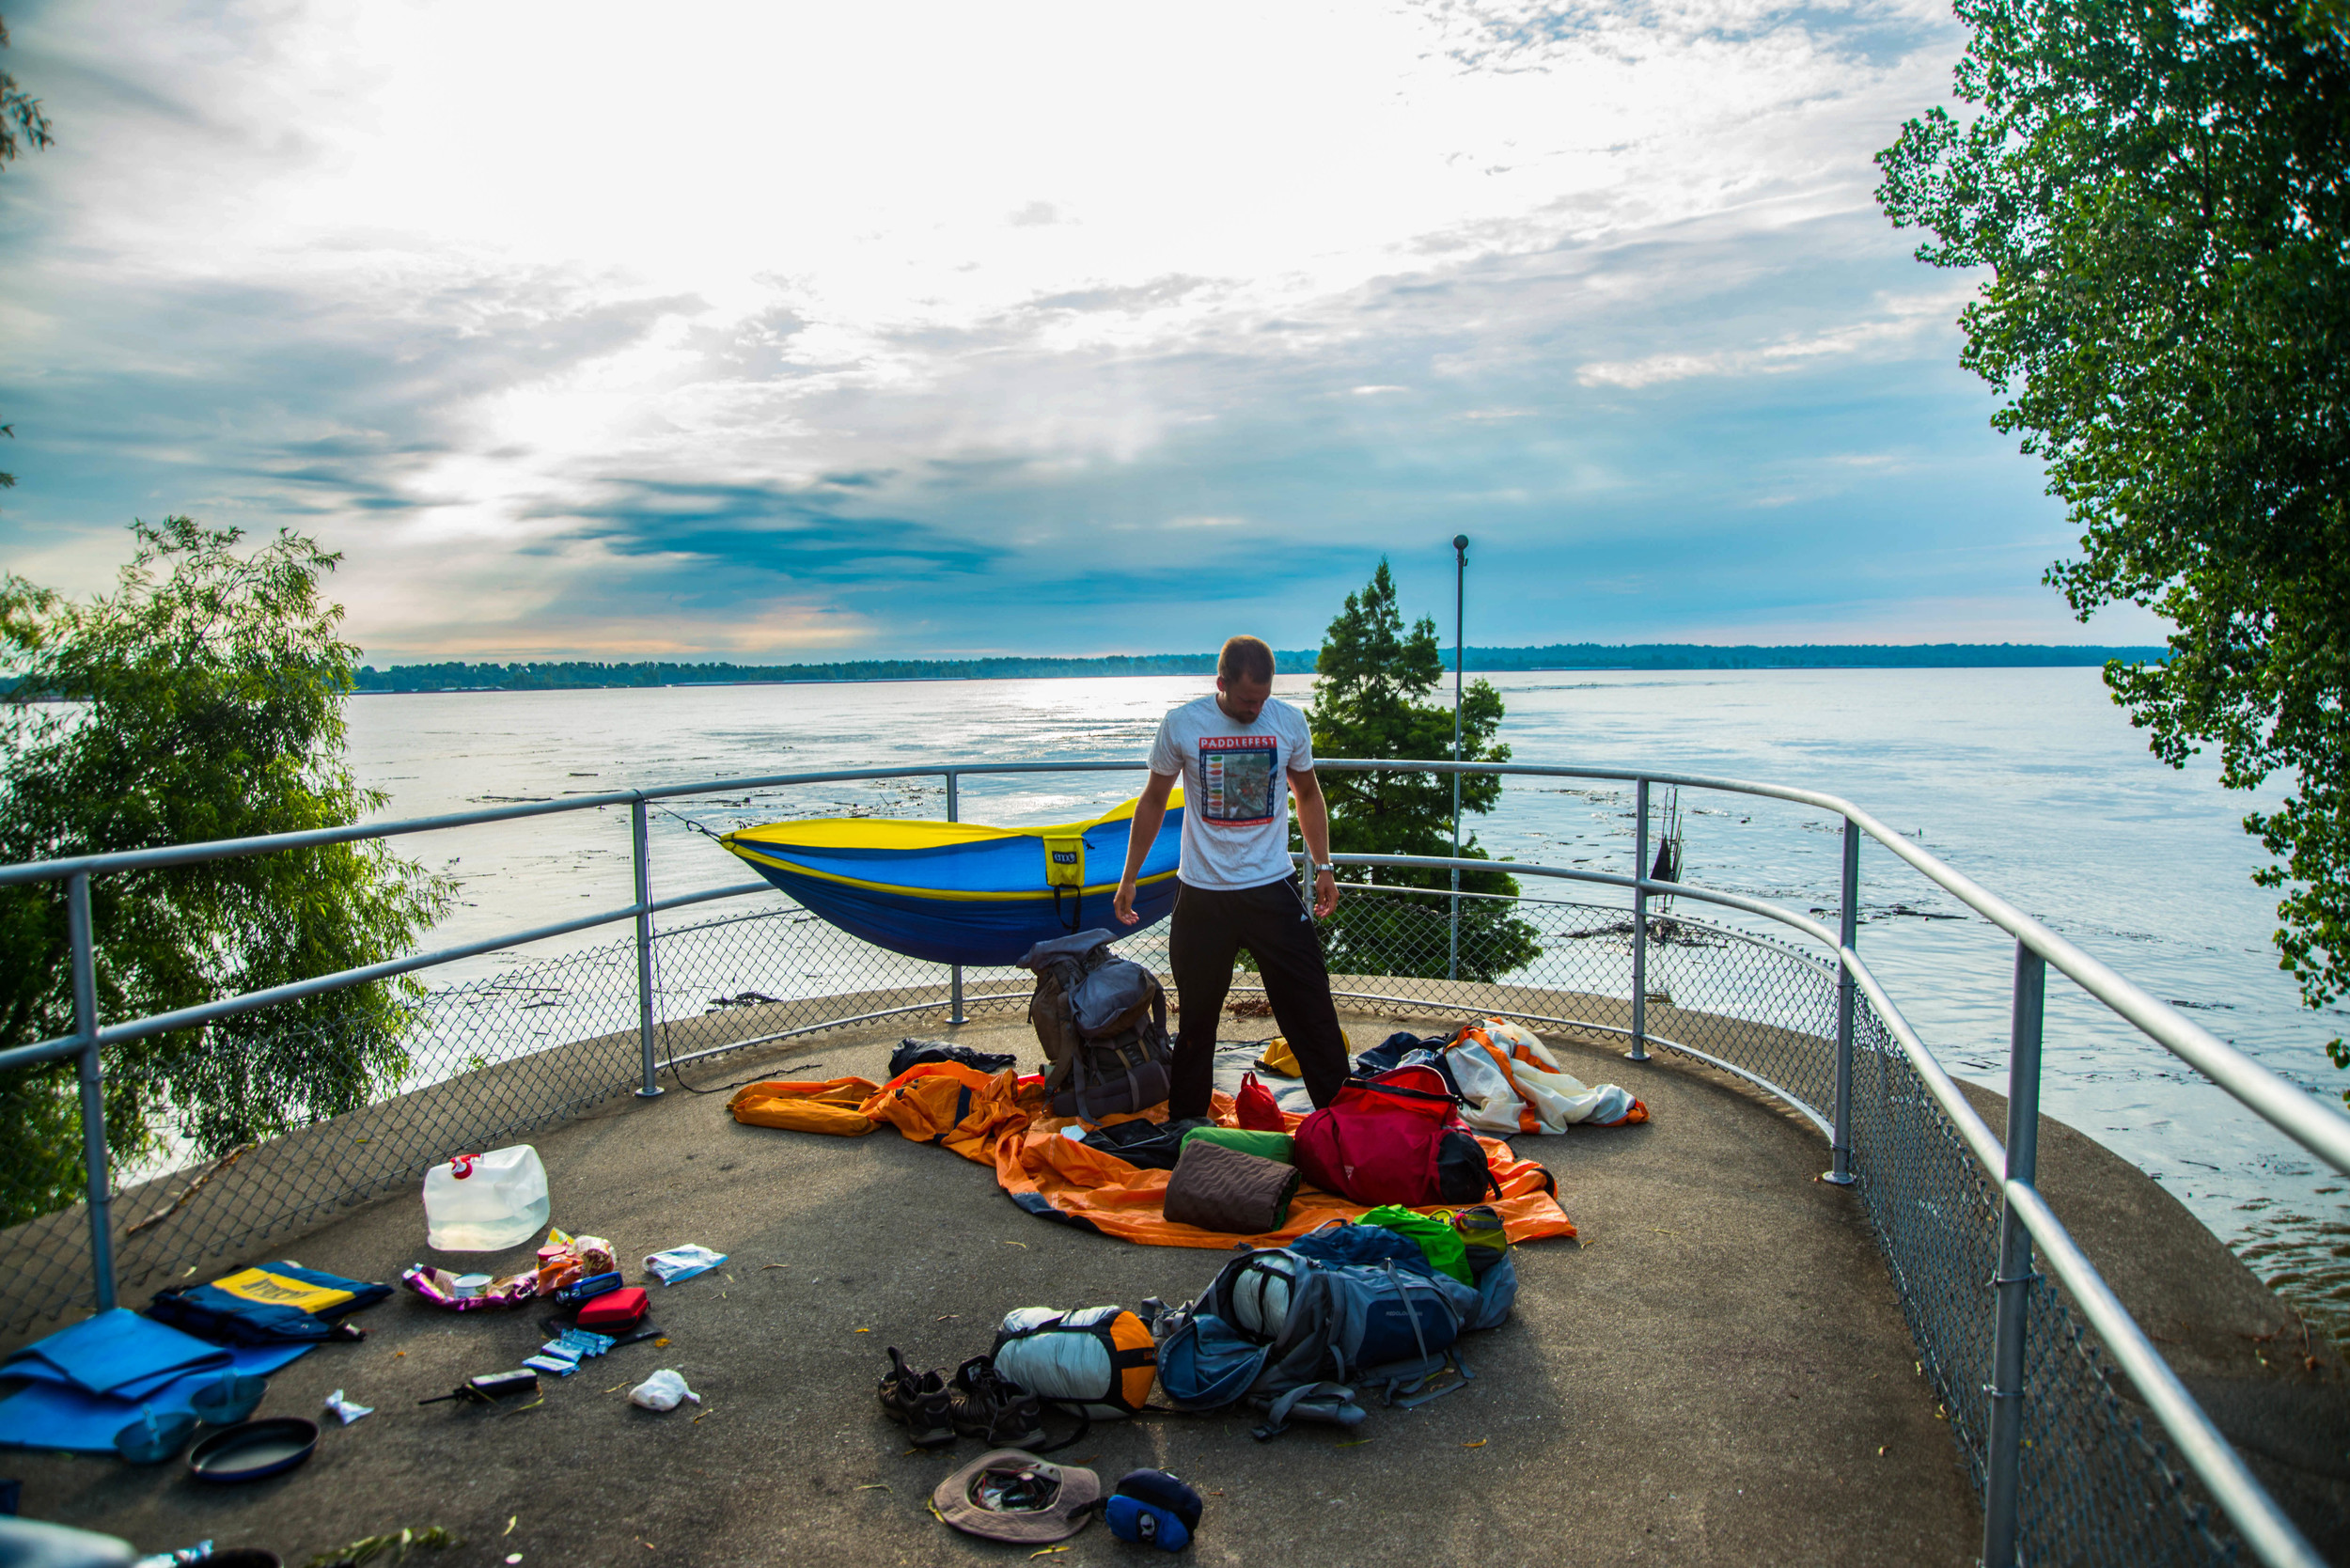 """The reverse view of the observation deck at the Mississippi/ Ohio confluence. This was one of the most interesting, and elevated, """"campsites"""" we had the fortune of discovering. Being able to stretch out, set up our hammocks and dry out our gear was quite enjoyable."""